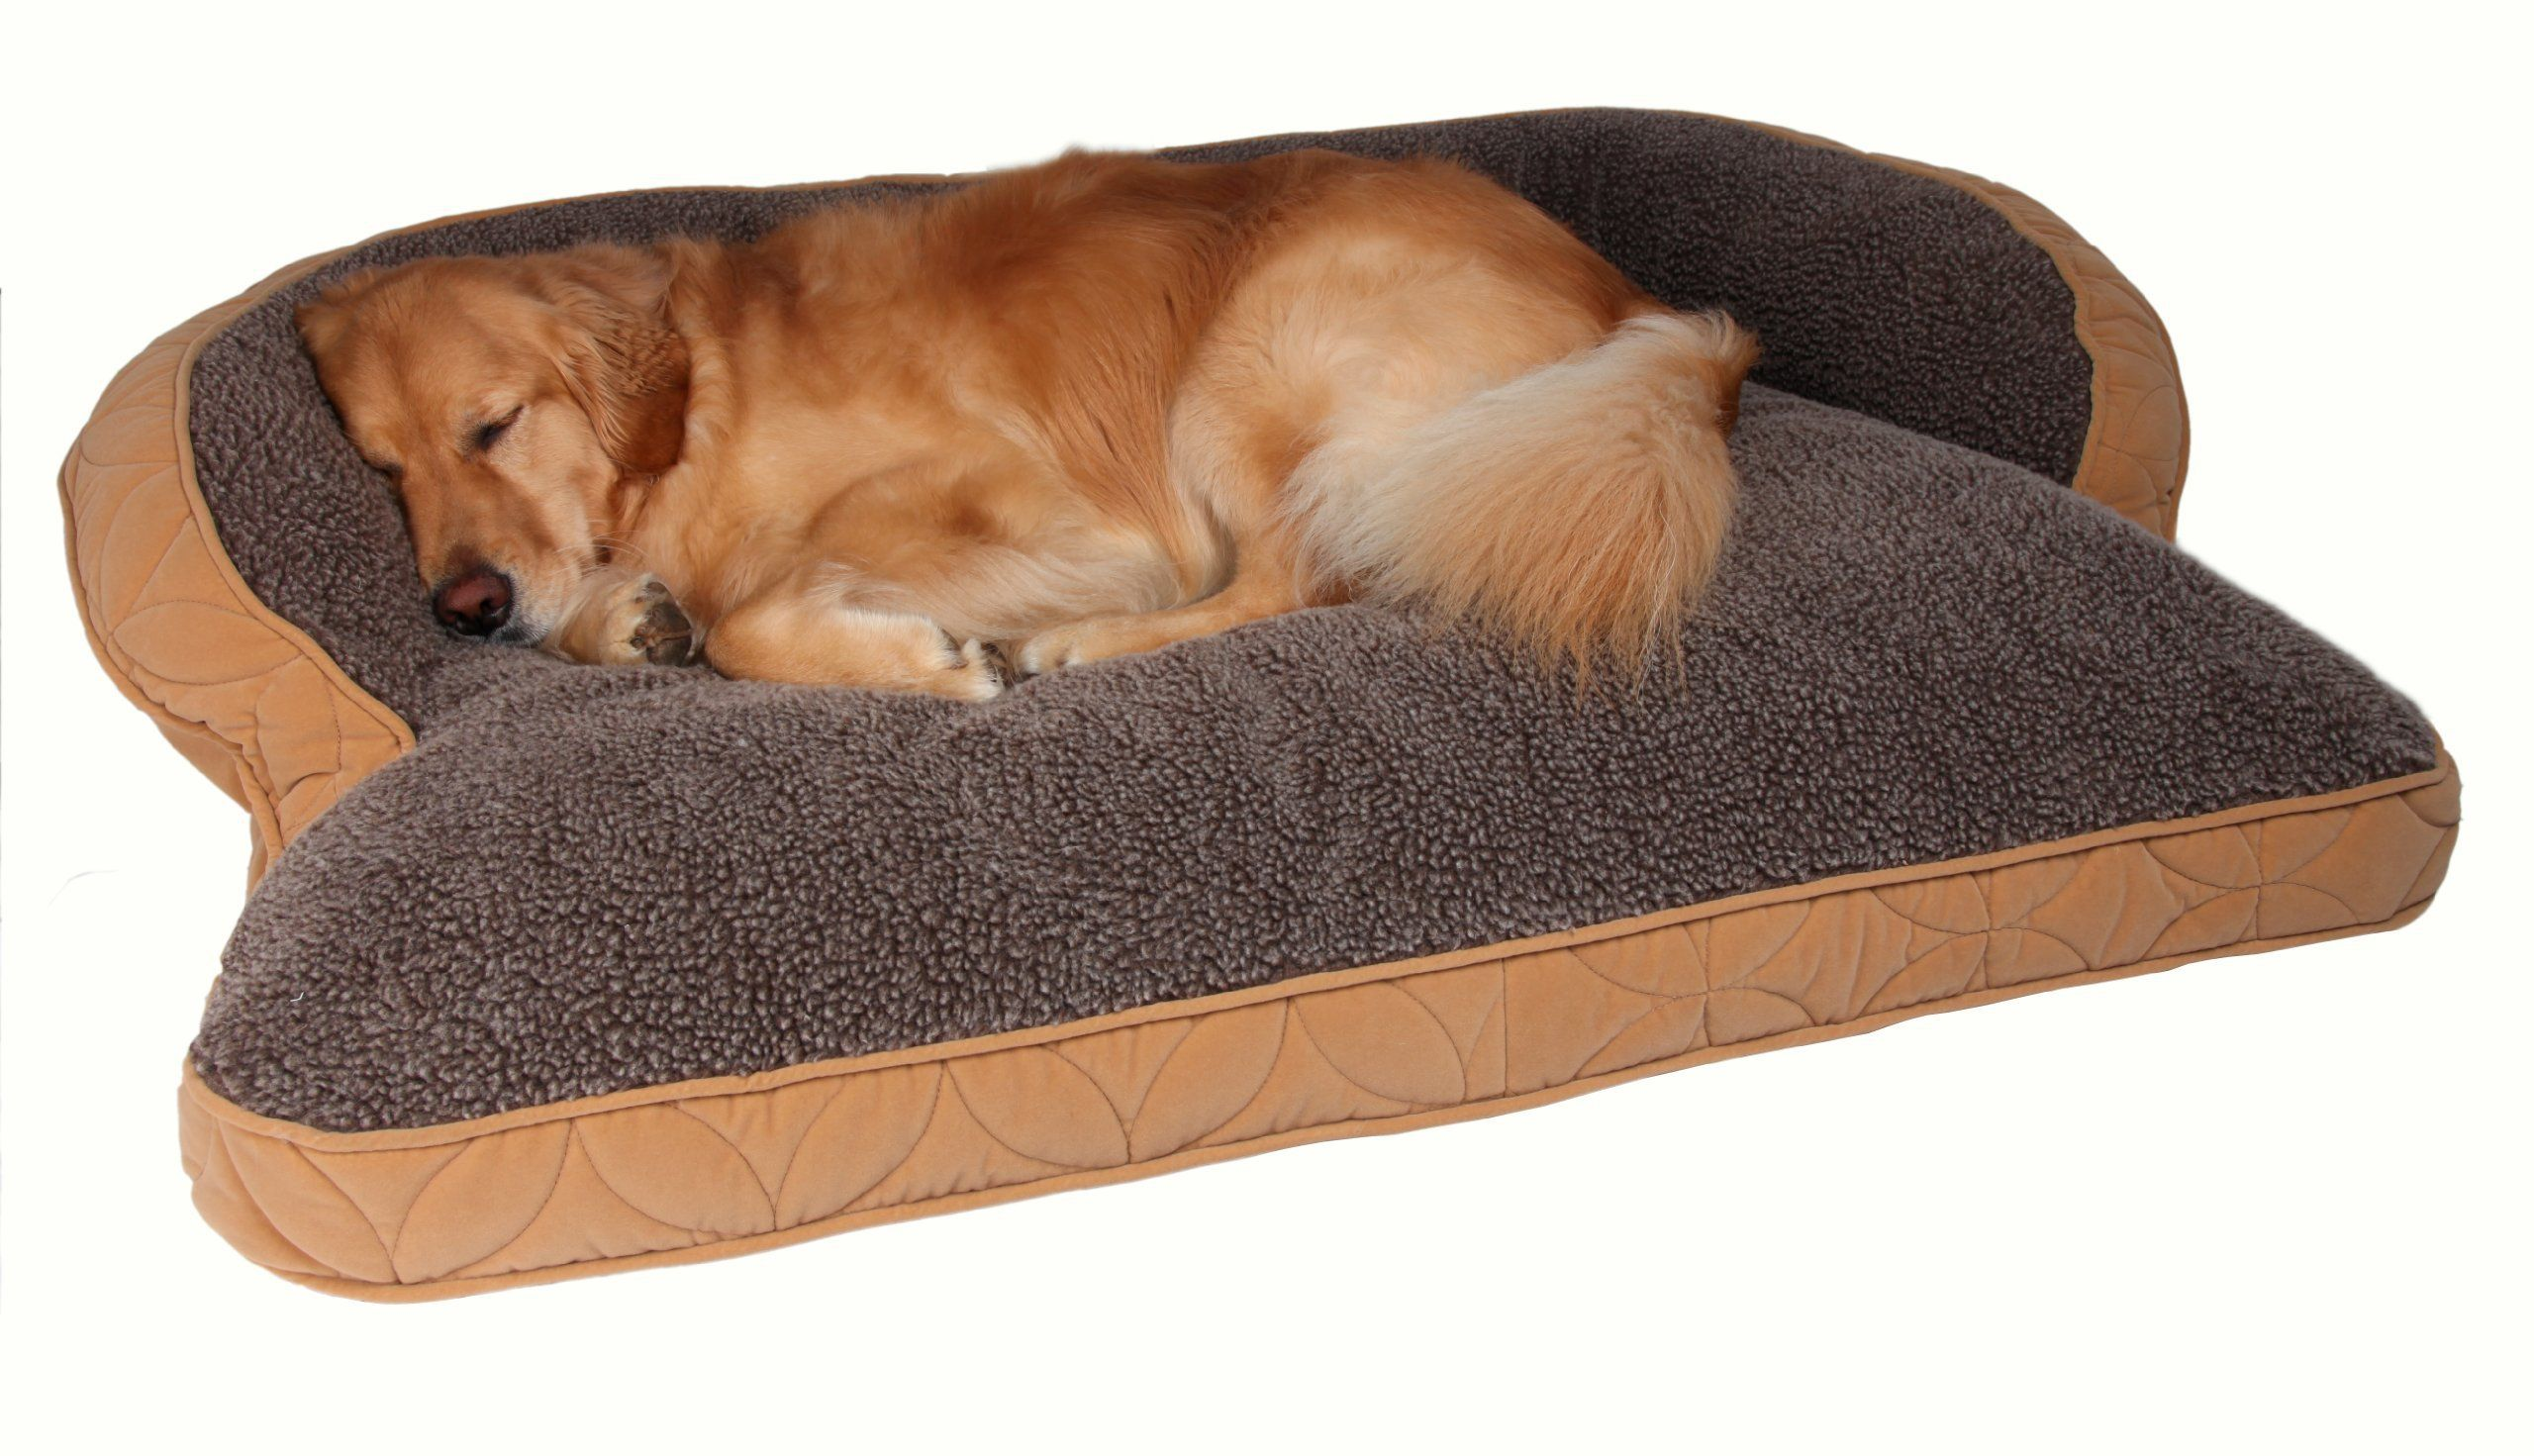 Pet Beds For Dogs And Cats Extra Large Dog Bed